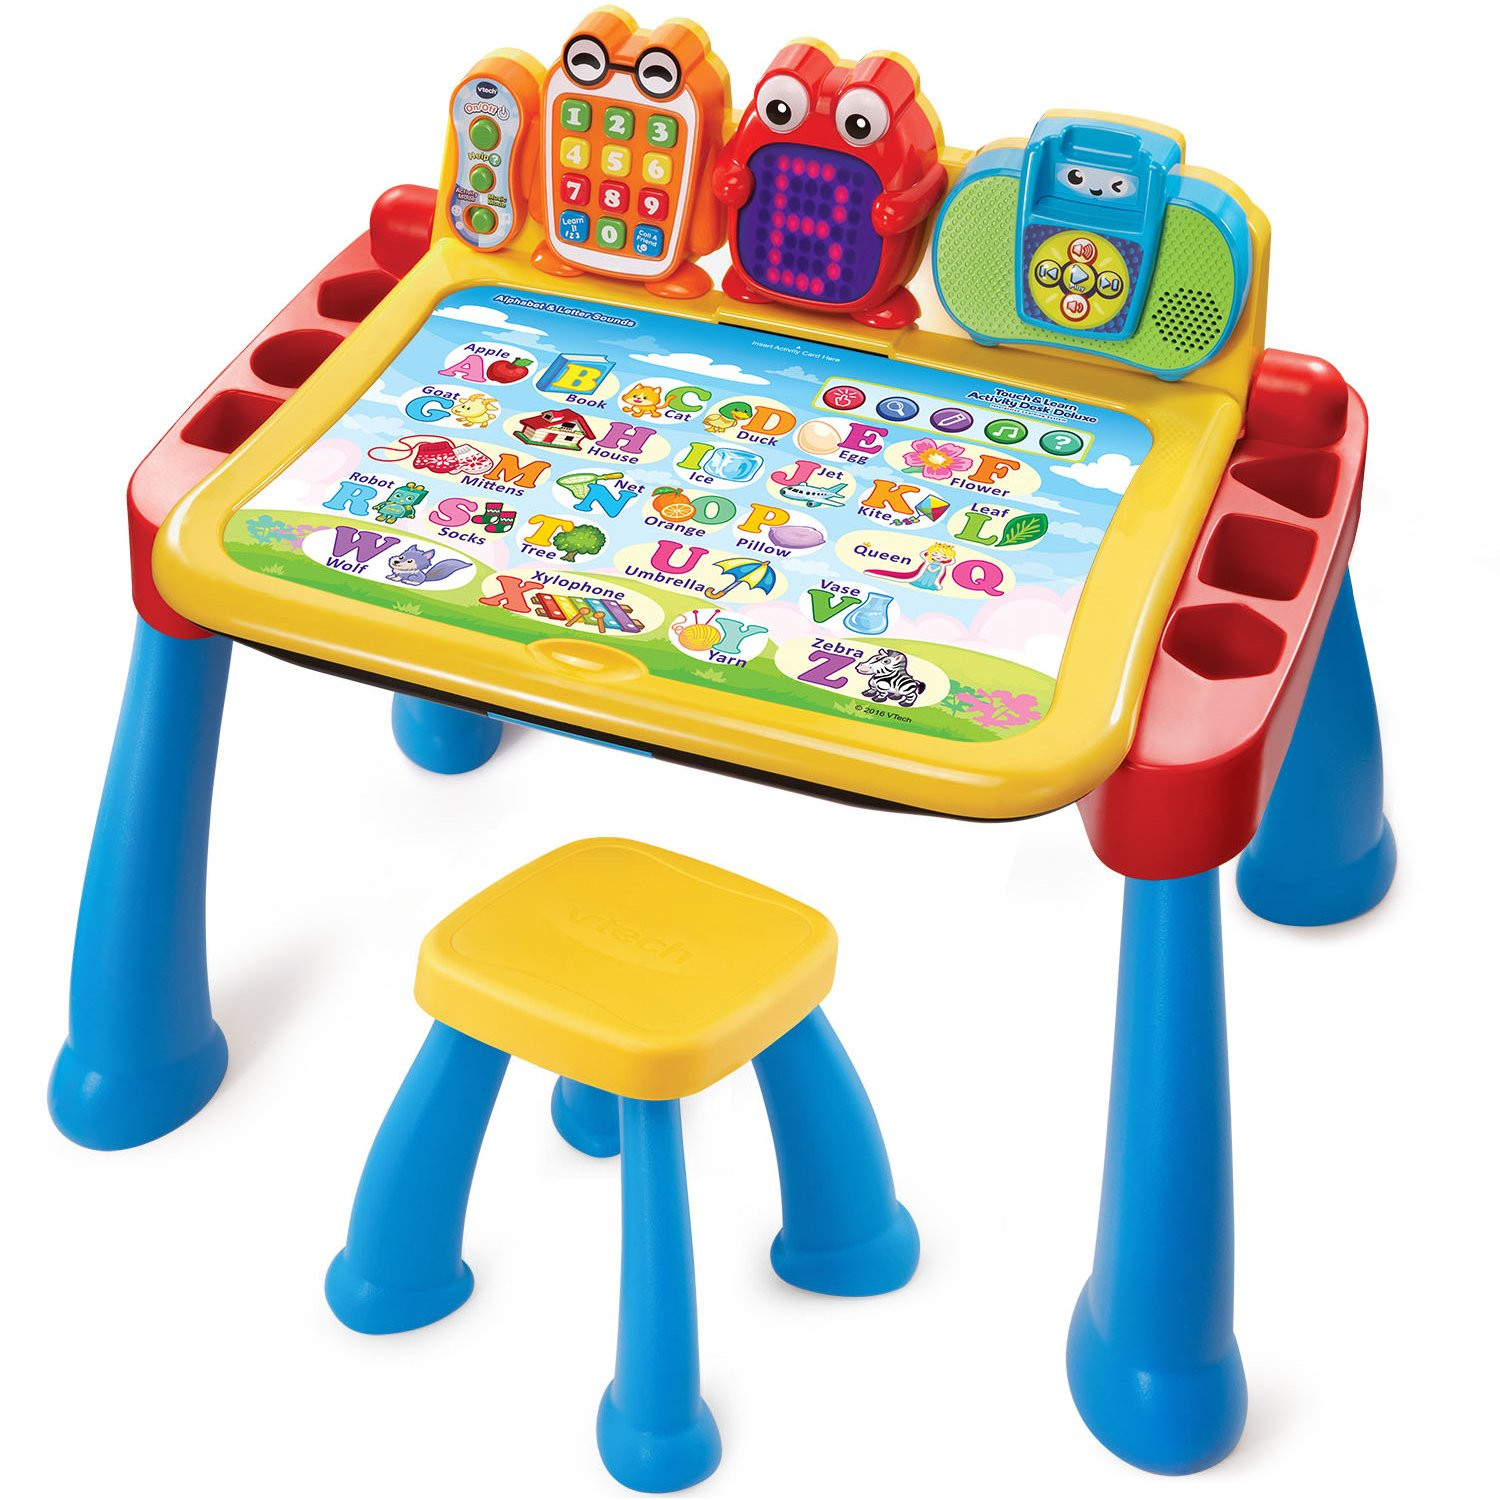 Best ideas about Baby Learning Table . Save or Pin Toddler Activity Table Baby Kids Interactive Vtech Now.